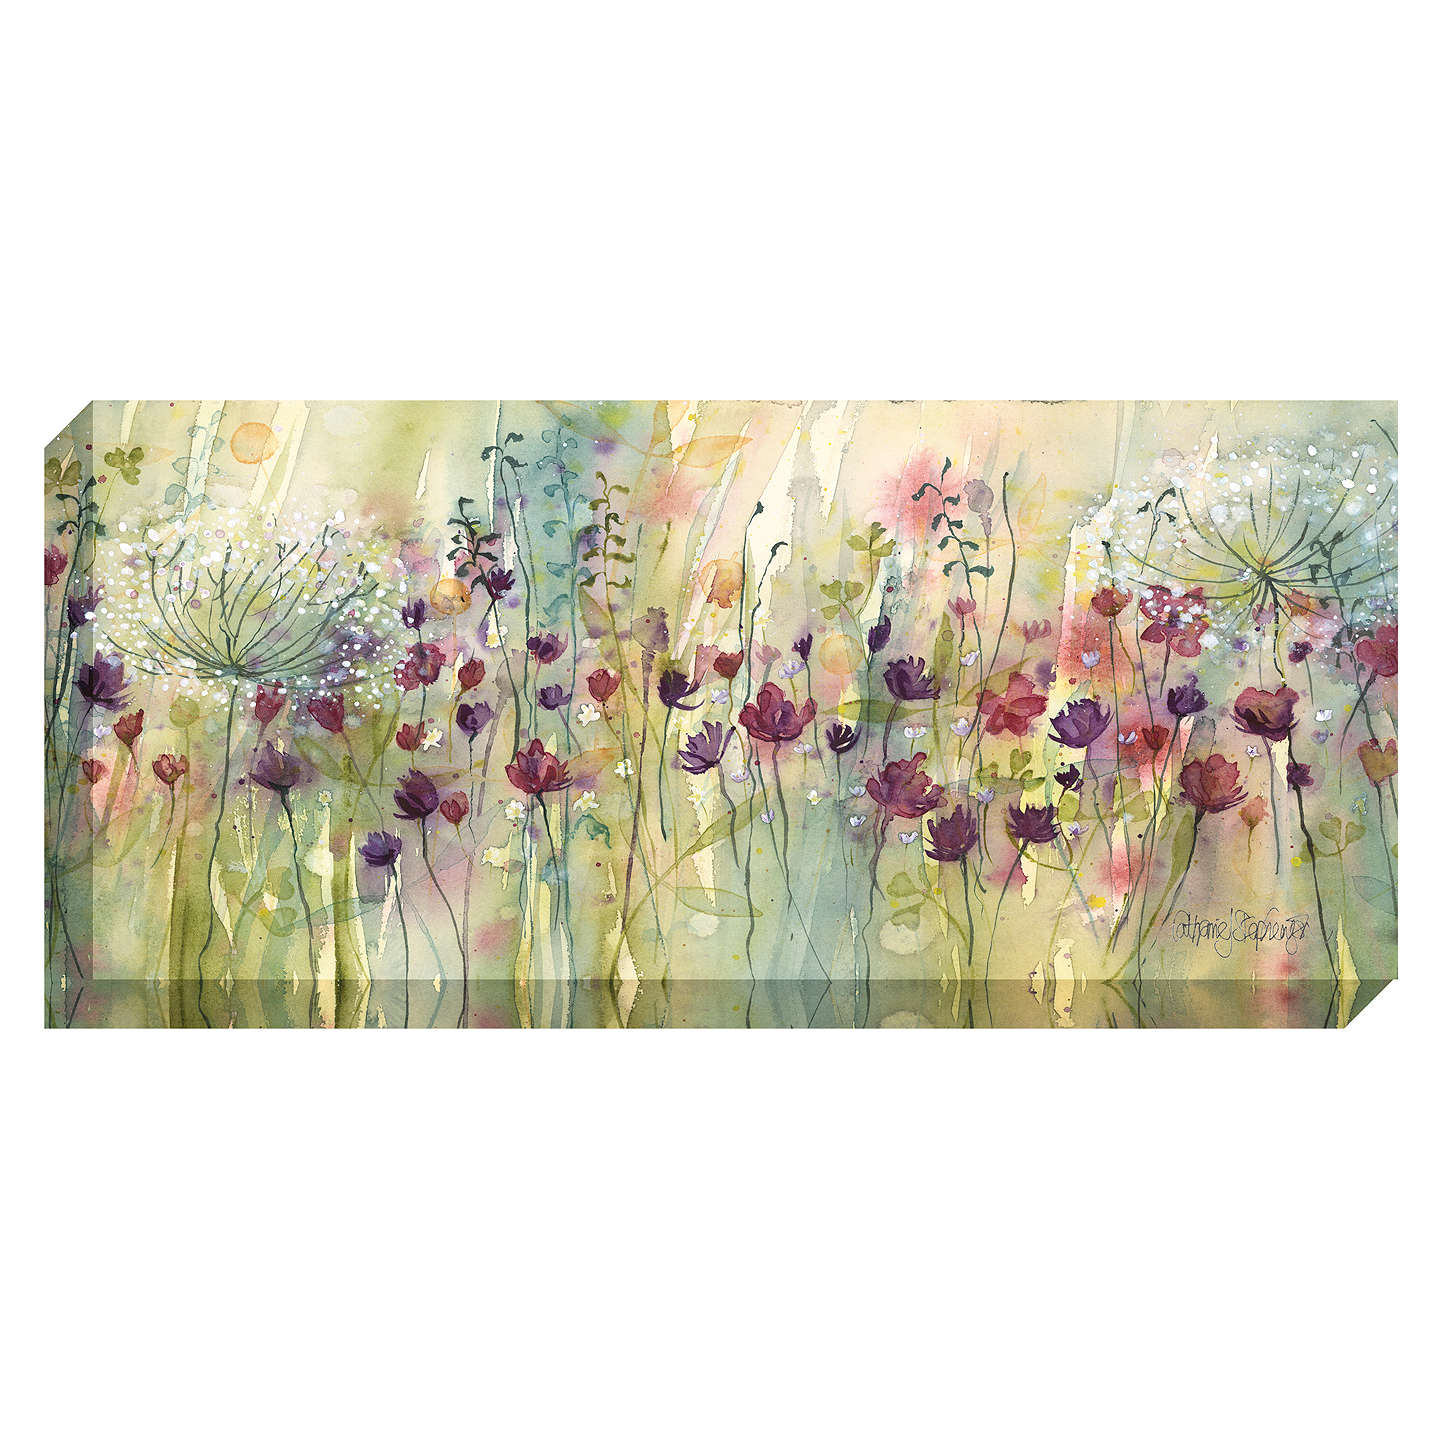 BuyCatherine Stephenson - Spring Floral Pods Print on Canvas, 60 x 135cm Online at johnlewis.com